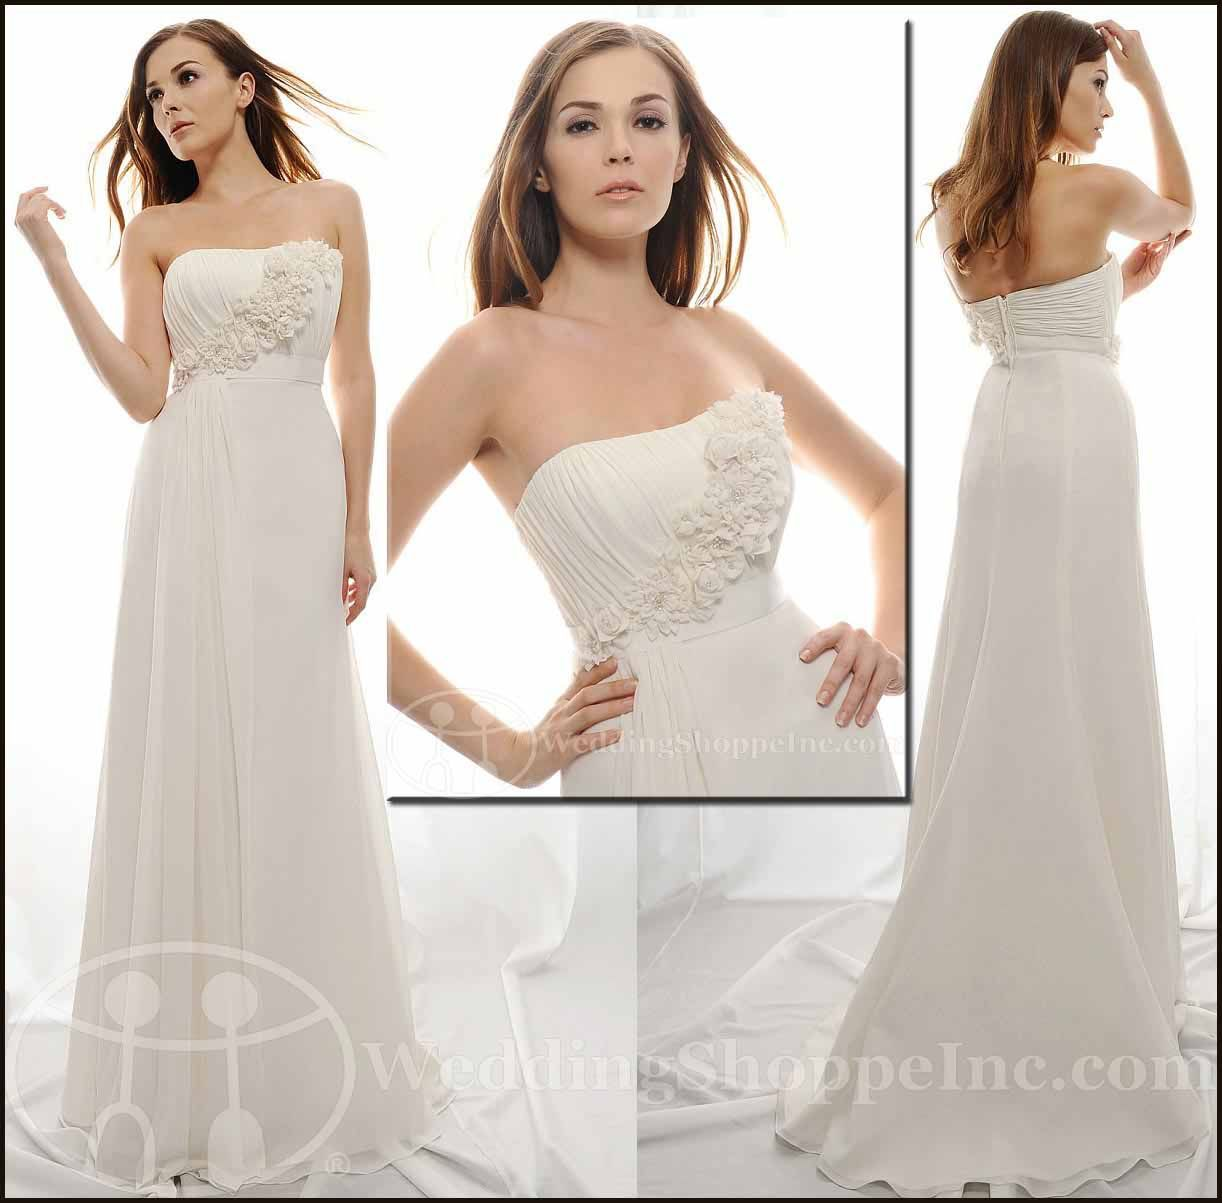 Forever classic wedding trends grecian wedding gowns wedding